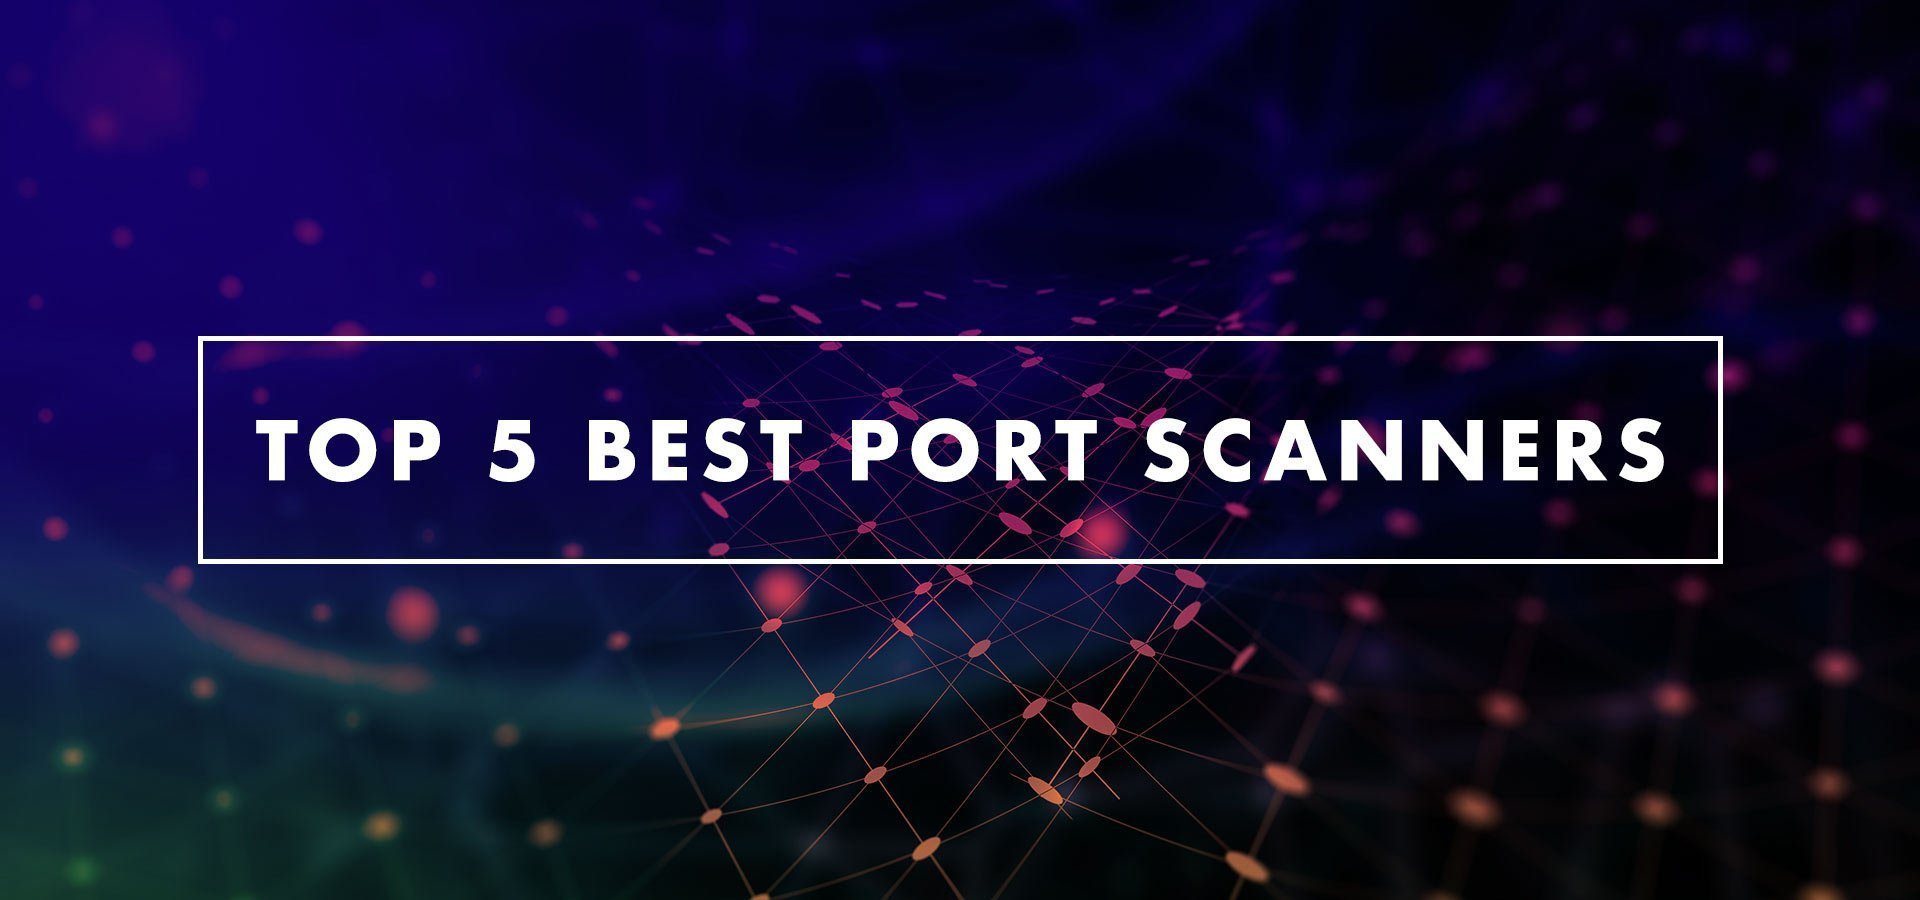 Top 5 Best Port Scanners